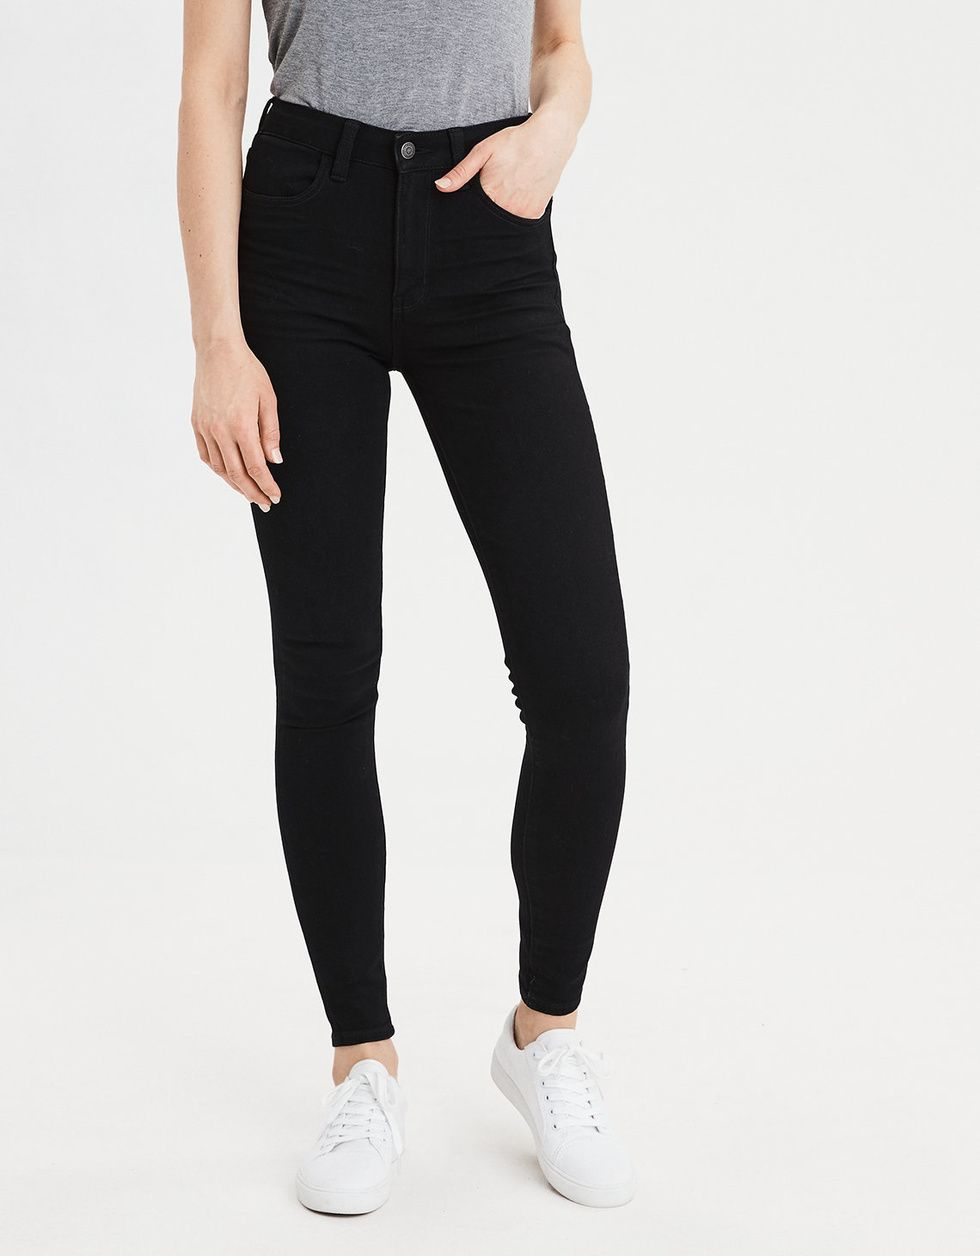 81a1ac17e1 The only pair of postpartum jeans you need 🙌 - Motherly